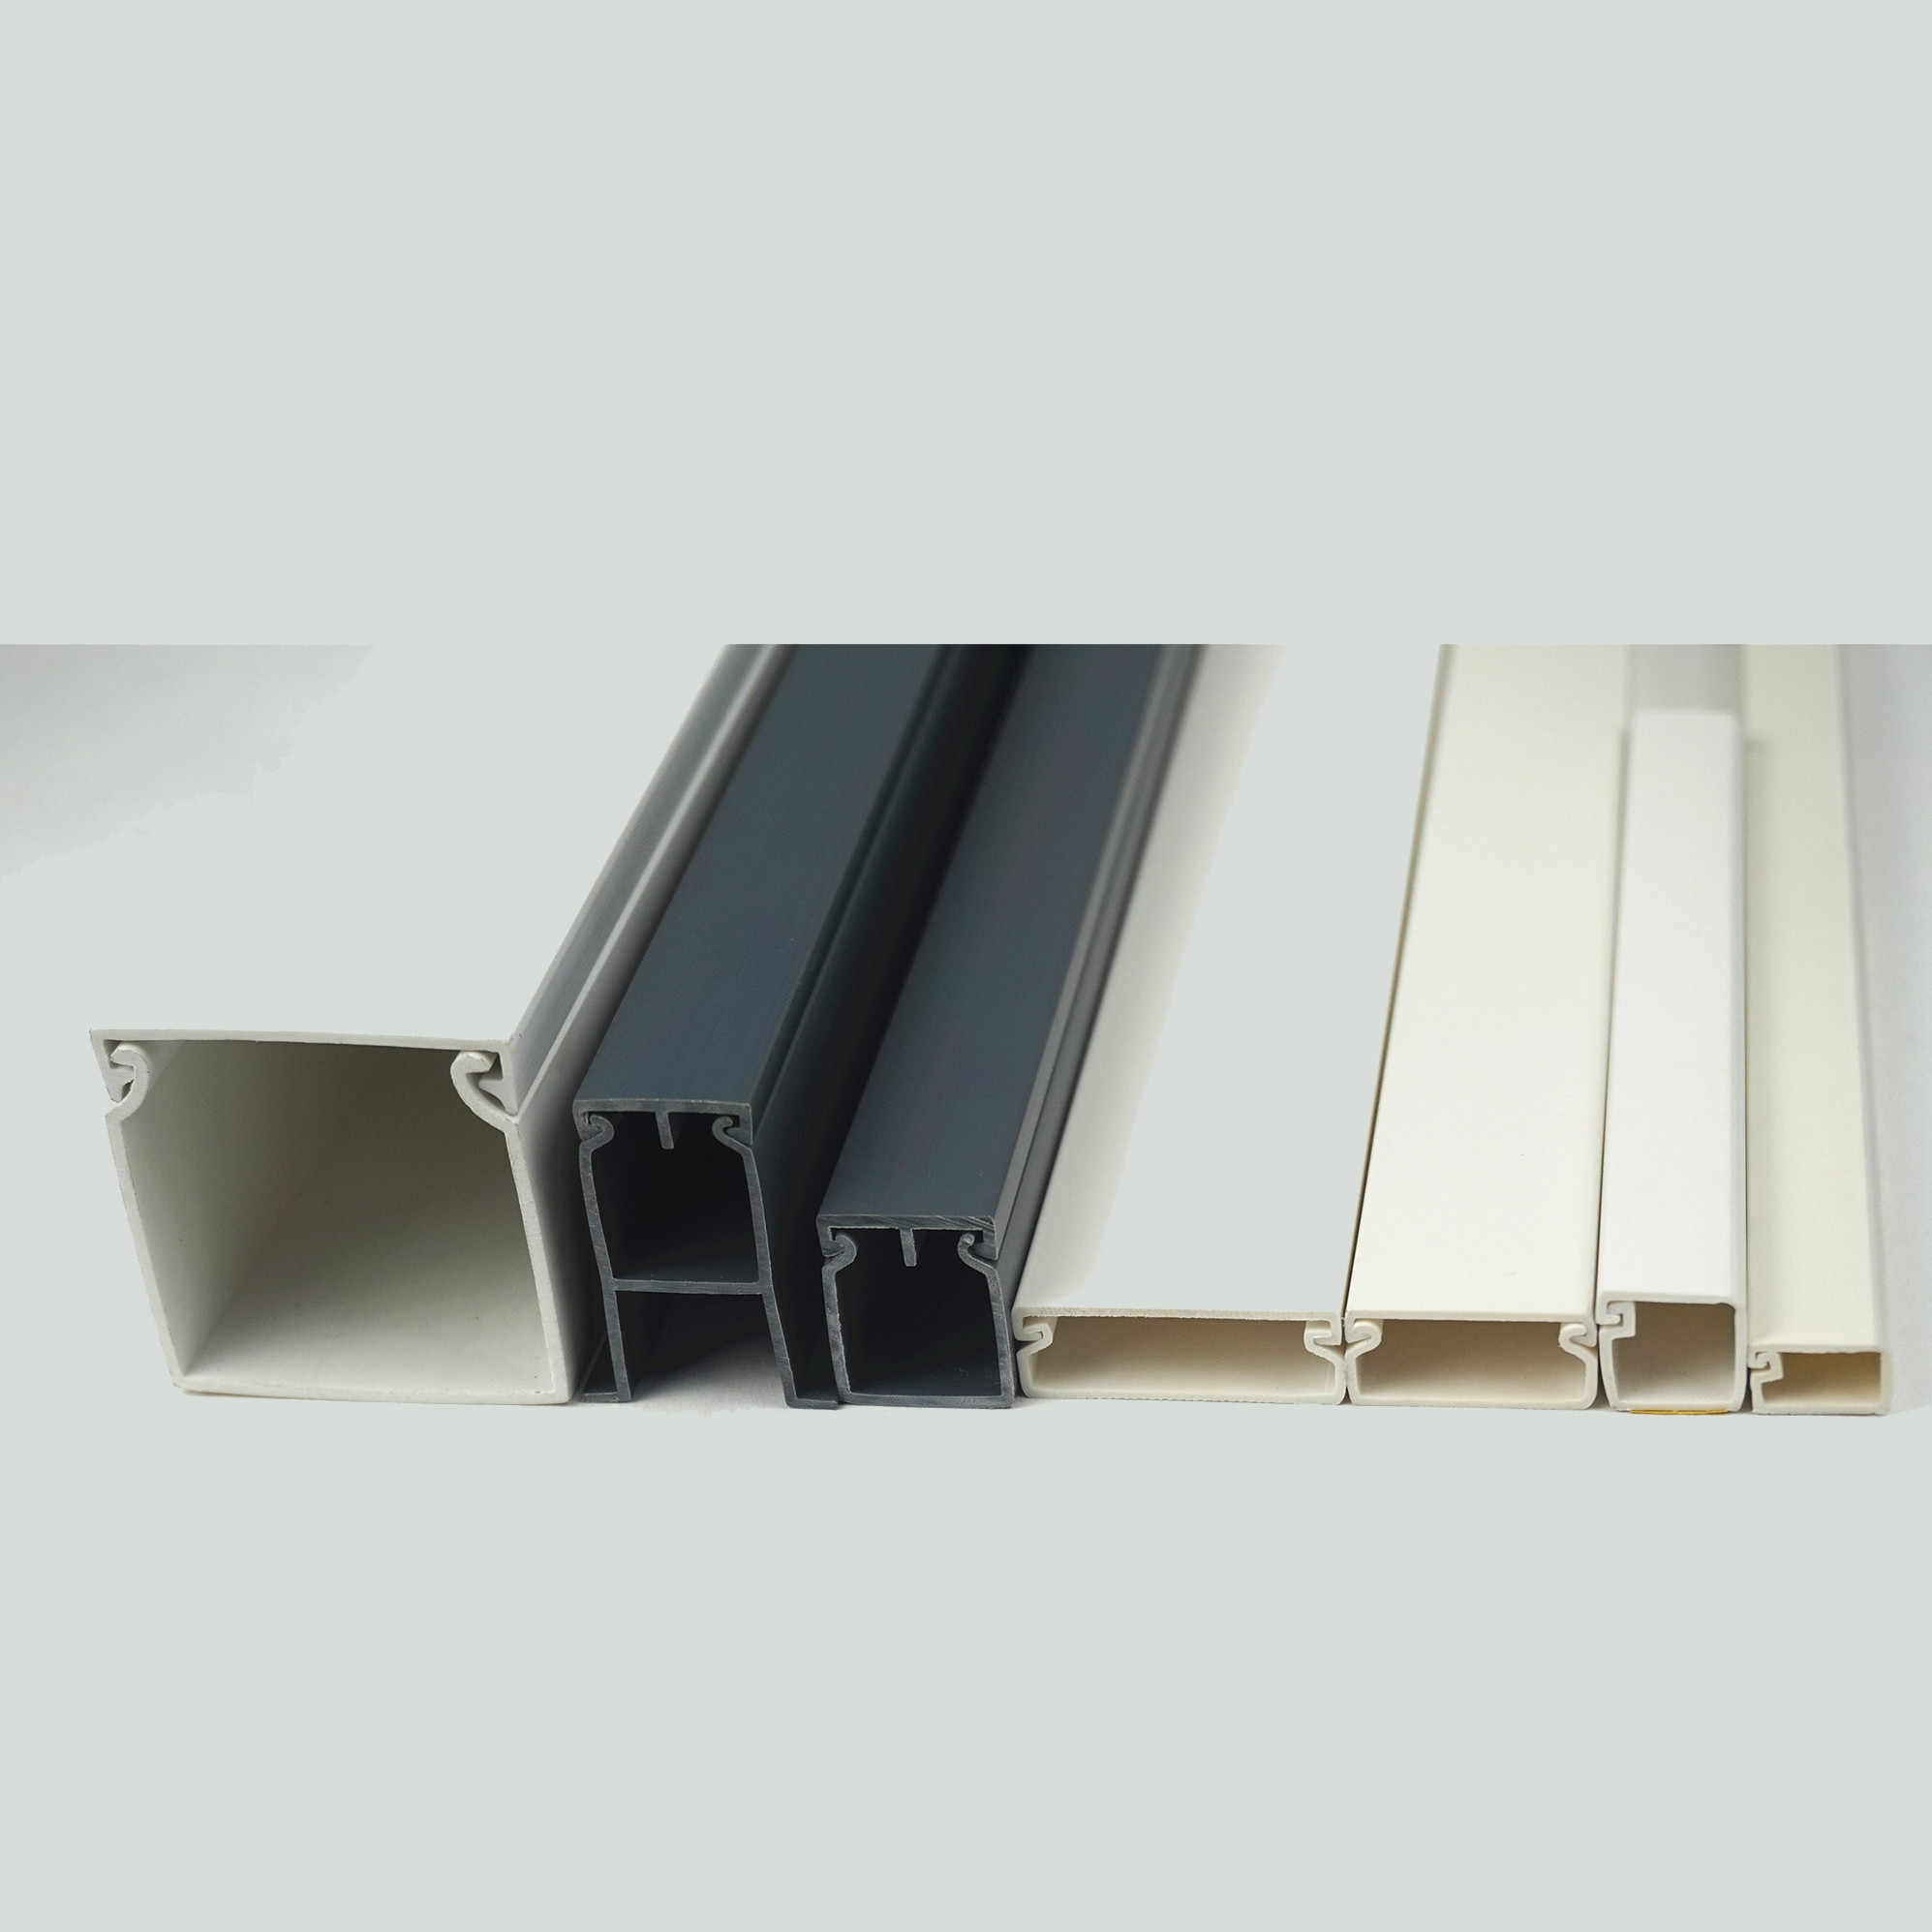 Source Flexible Philippines Pvc Cable Duct Fire Resistant Arc Malaysia Plastic Floor Wall Wire Trunking Size System On M Alibaba Com